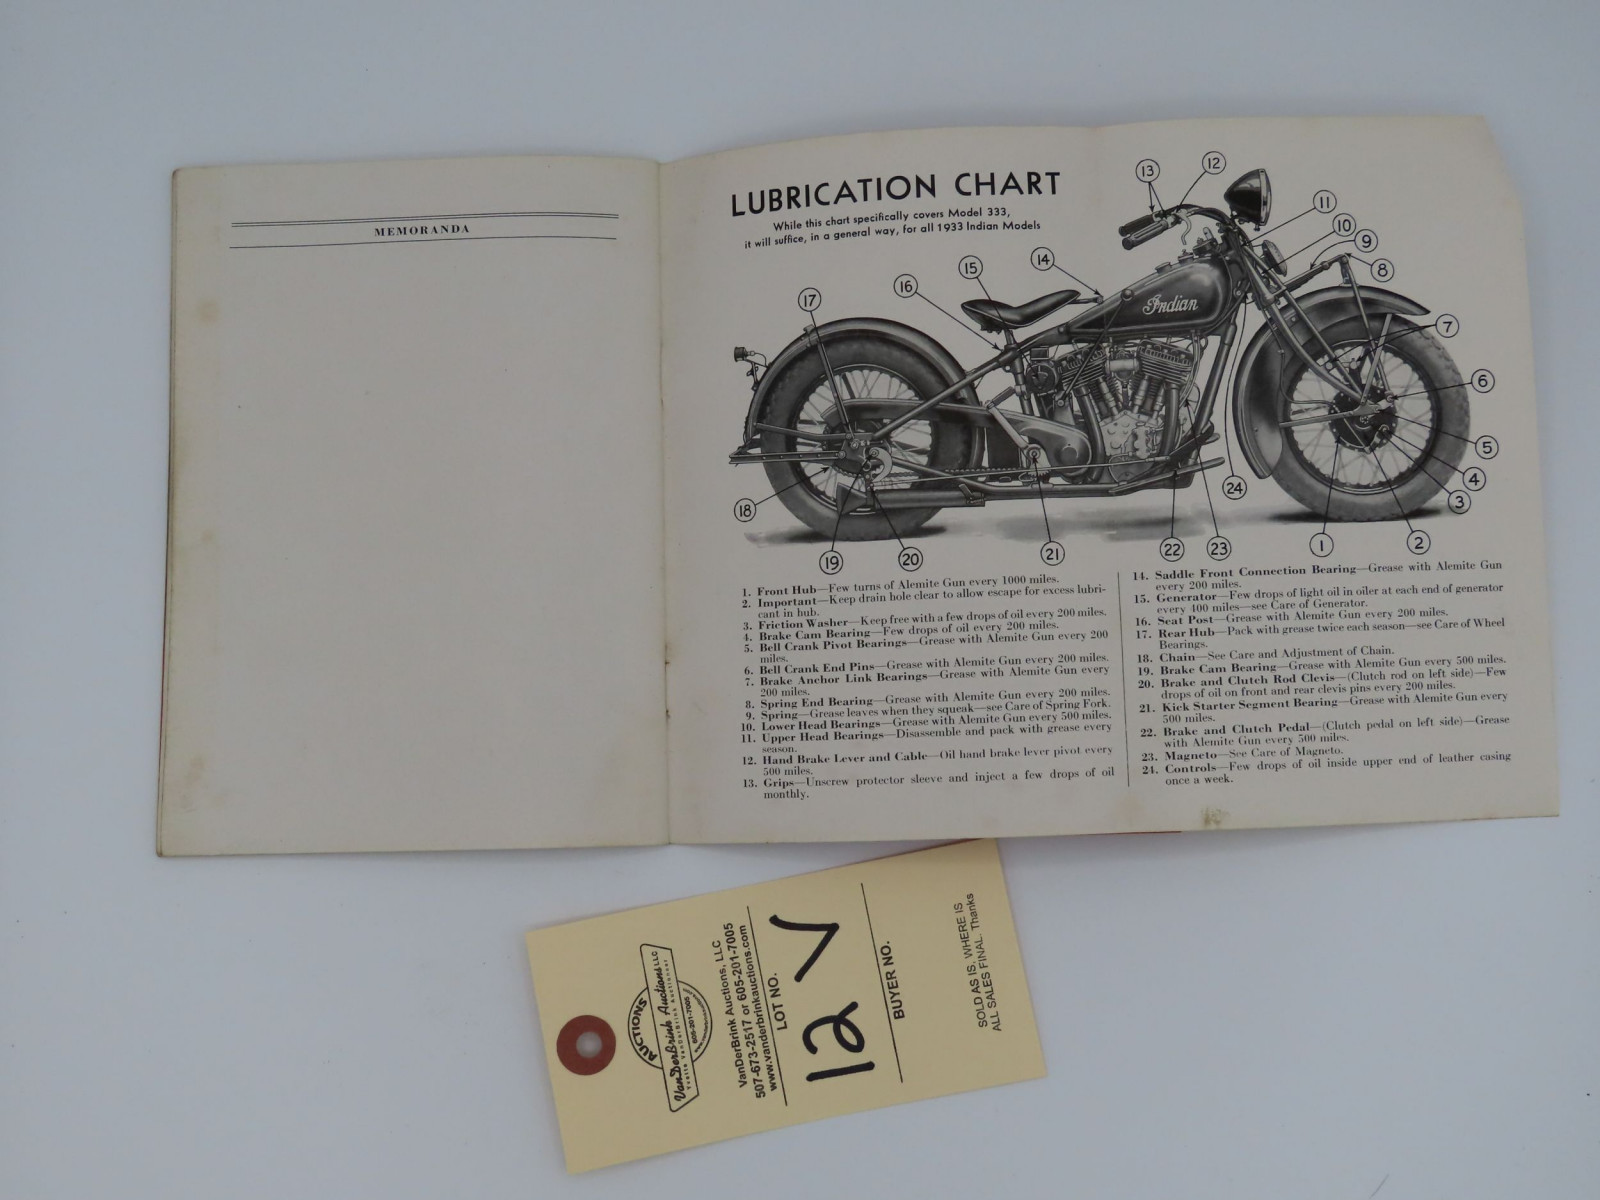 1933 Indian Riders' Instruction Book - Image 2